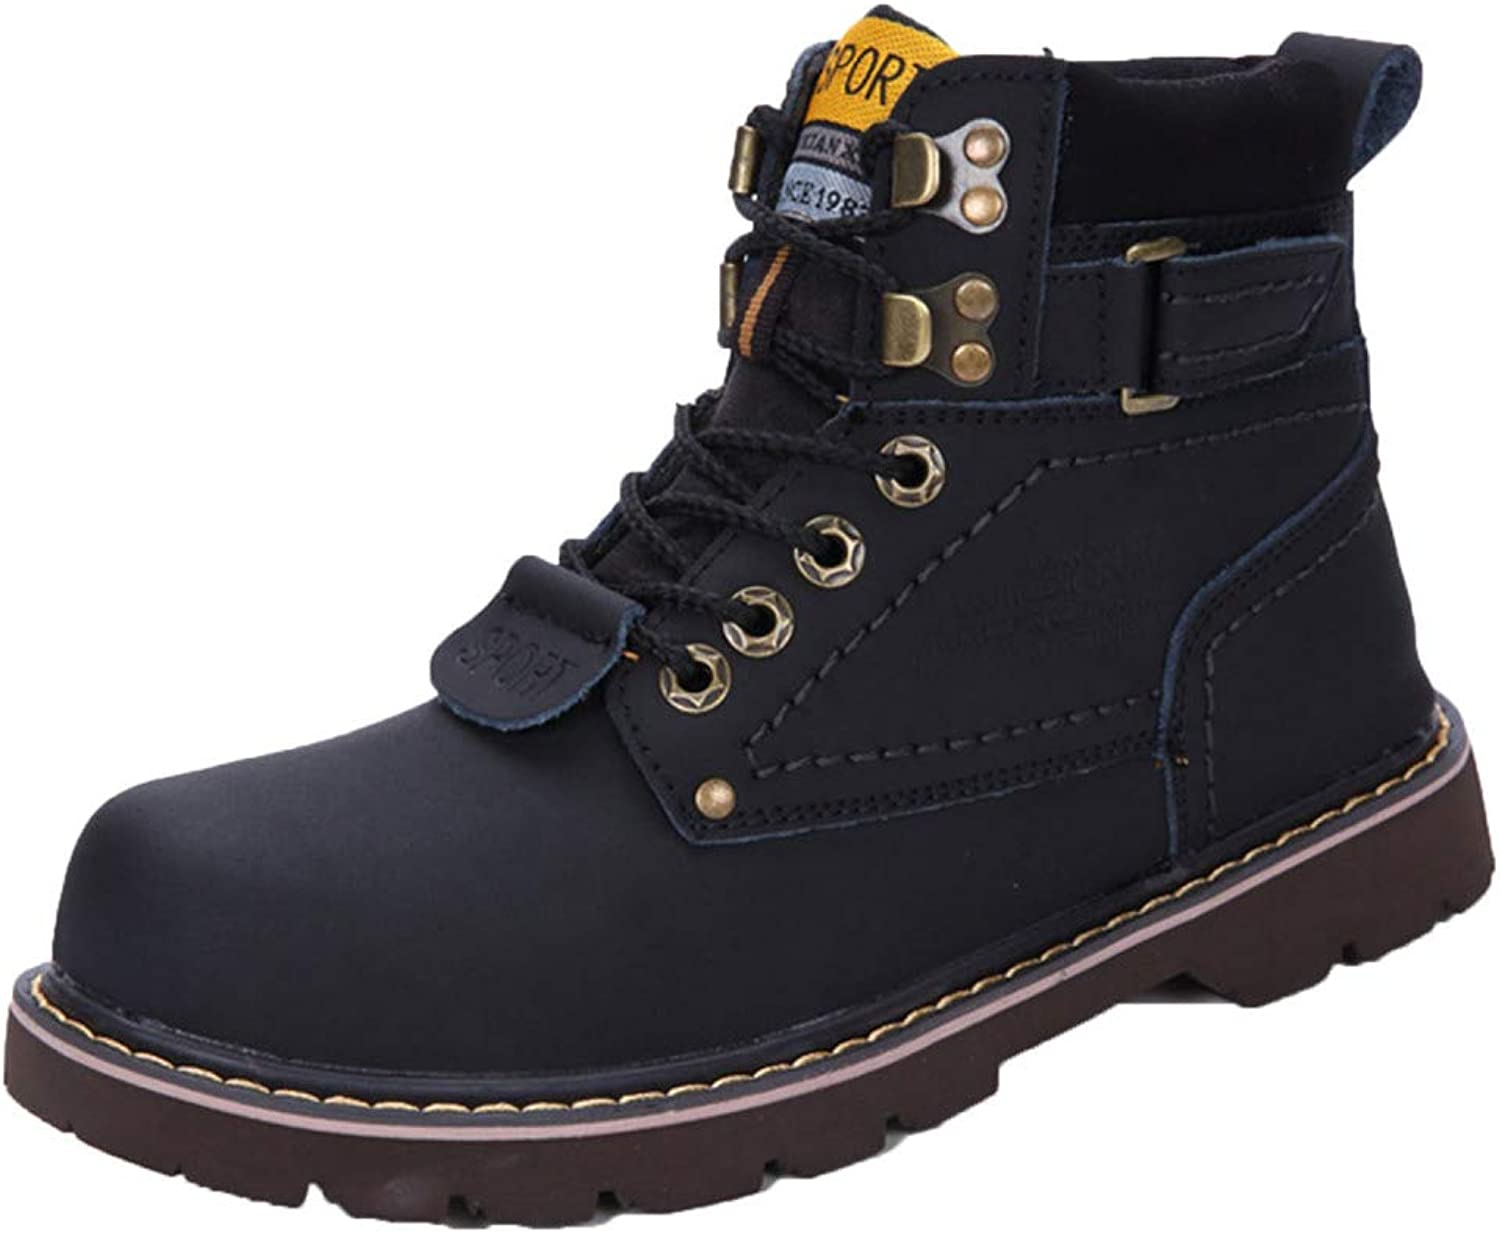 Men's Boots Safety Boots Dewalt Lightweight Waterproof Trainers Martin High Help Plus Velvet